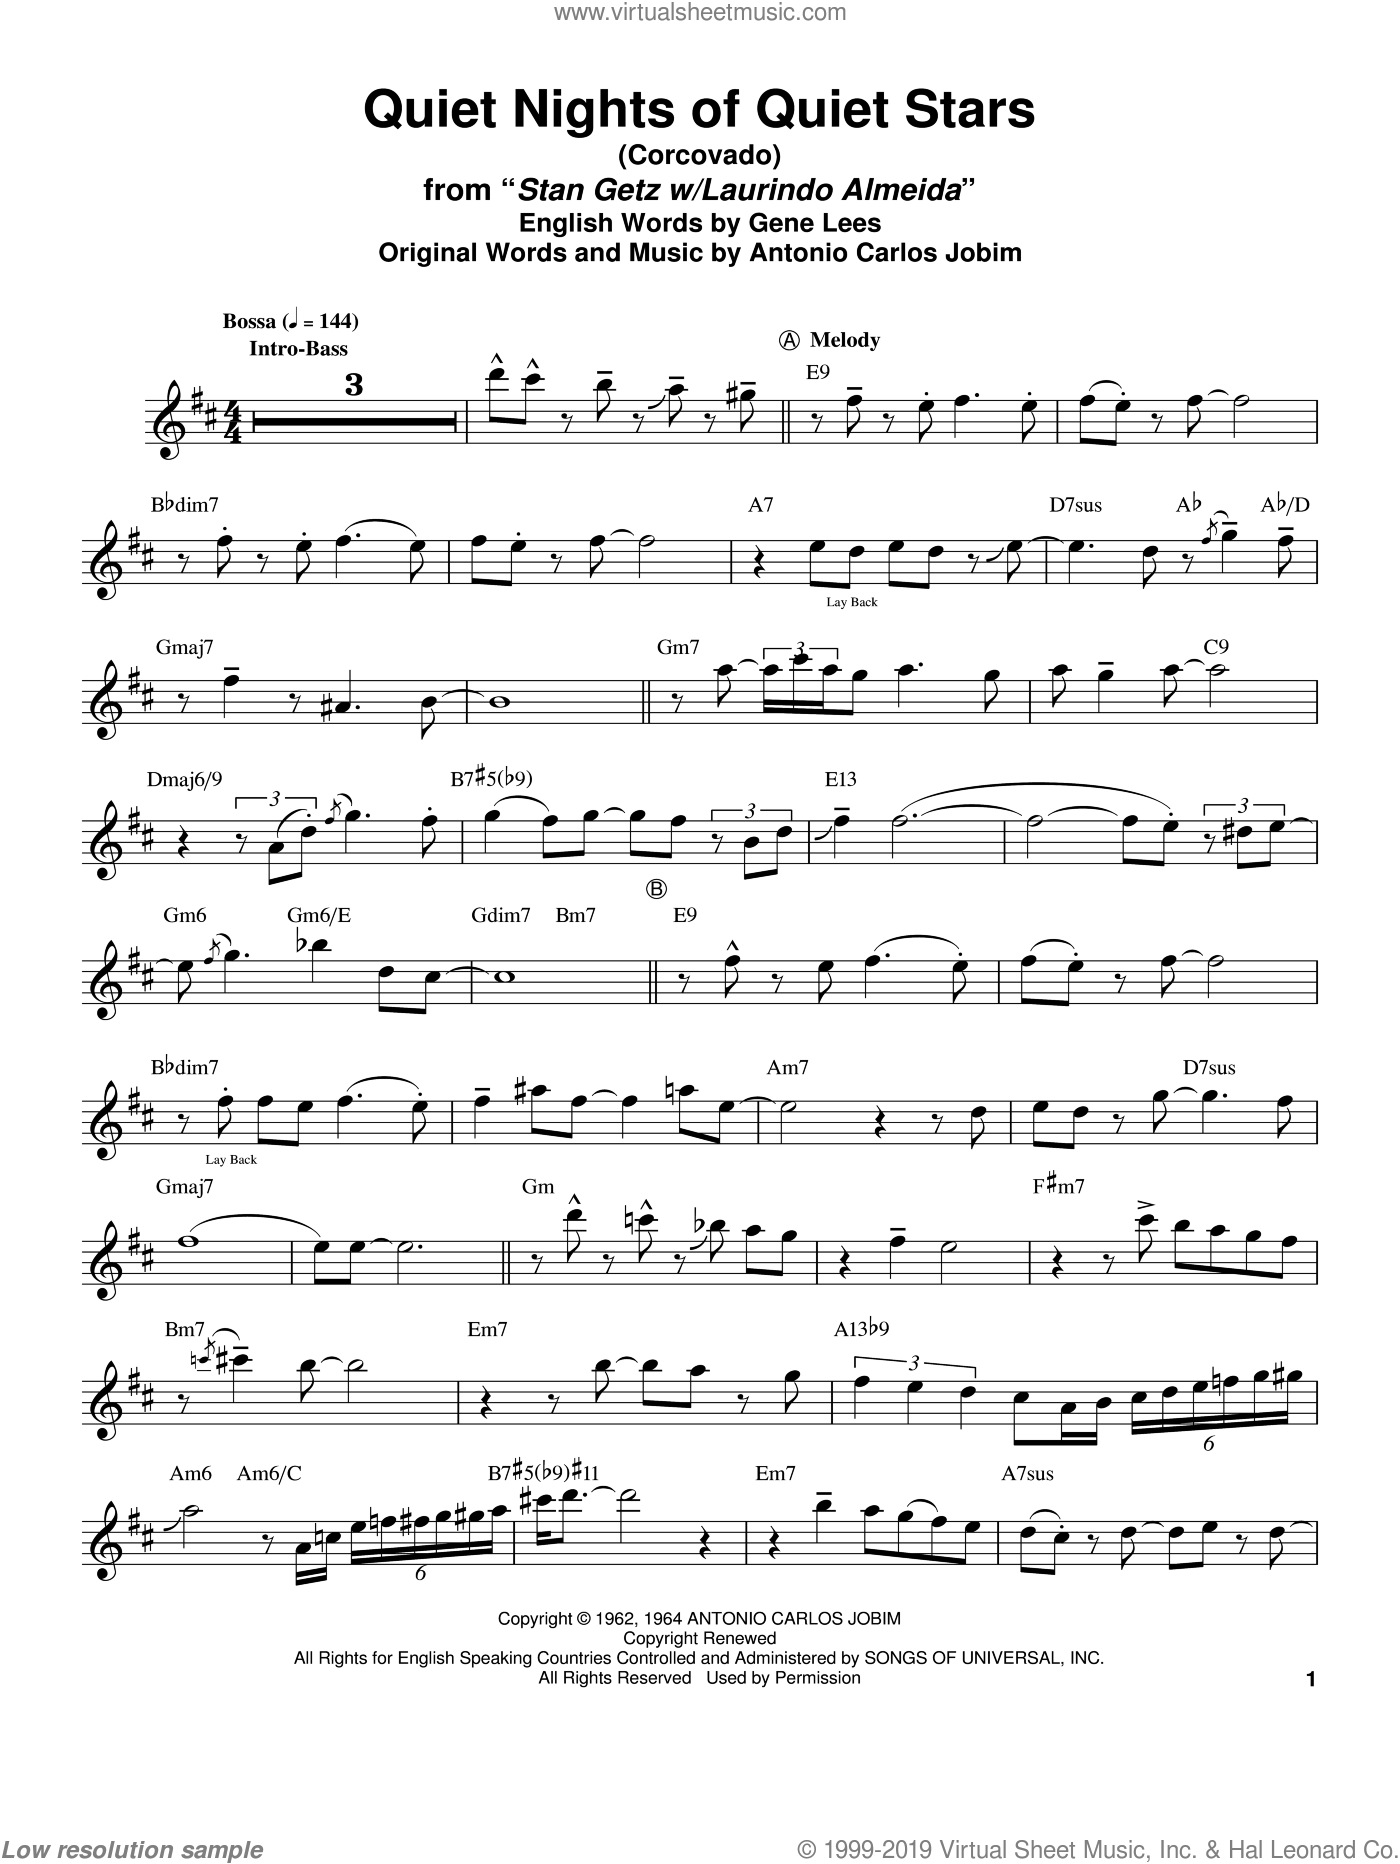 Quiet Nights Of Quiet Stars (Corcovado) sheet music for tenor saxophone solo (transcription) by Eugene John Lees, Andy Williams, Stan Getz and Antonio Carlos Jobim. Score Image Preview.